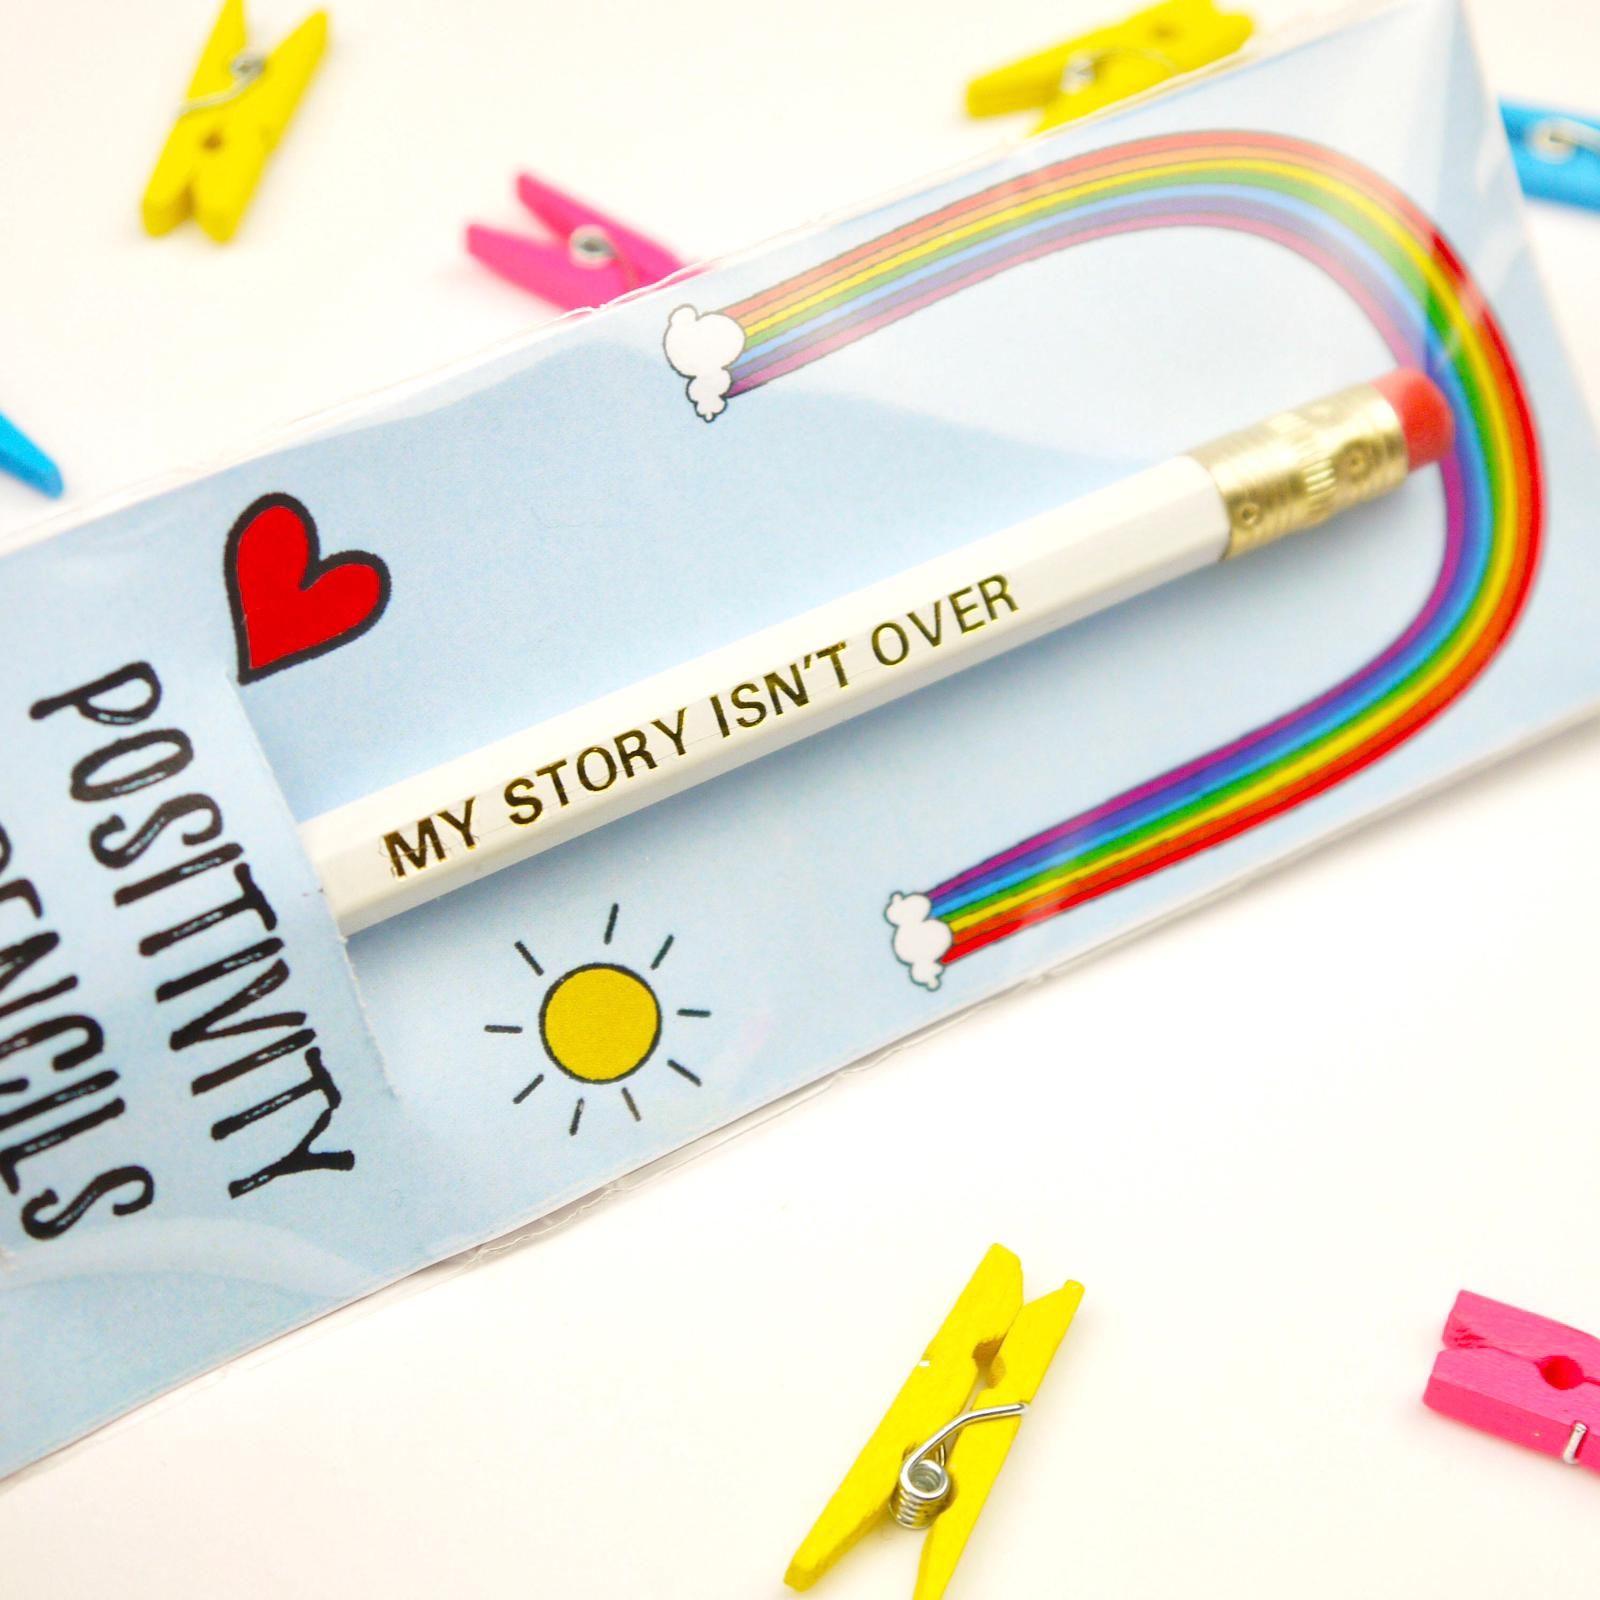 My Story Isn't Over Single Positivity Pencil